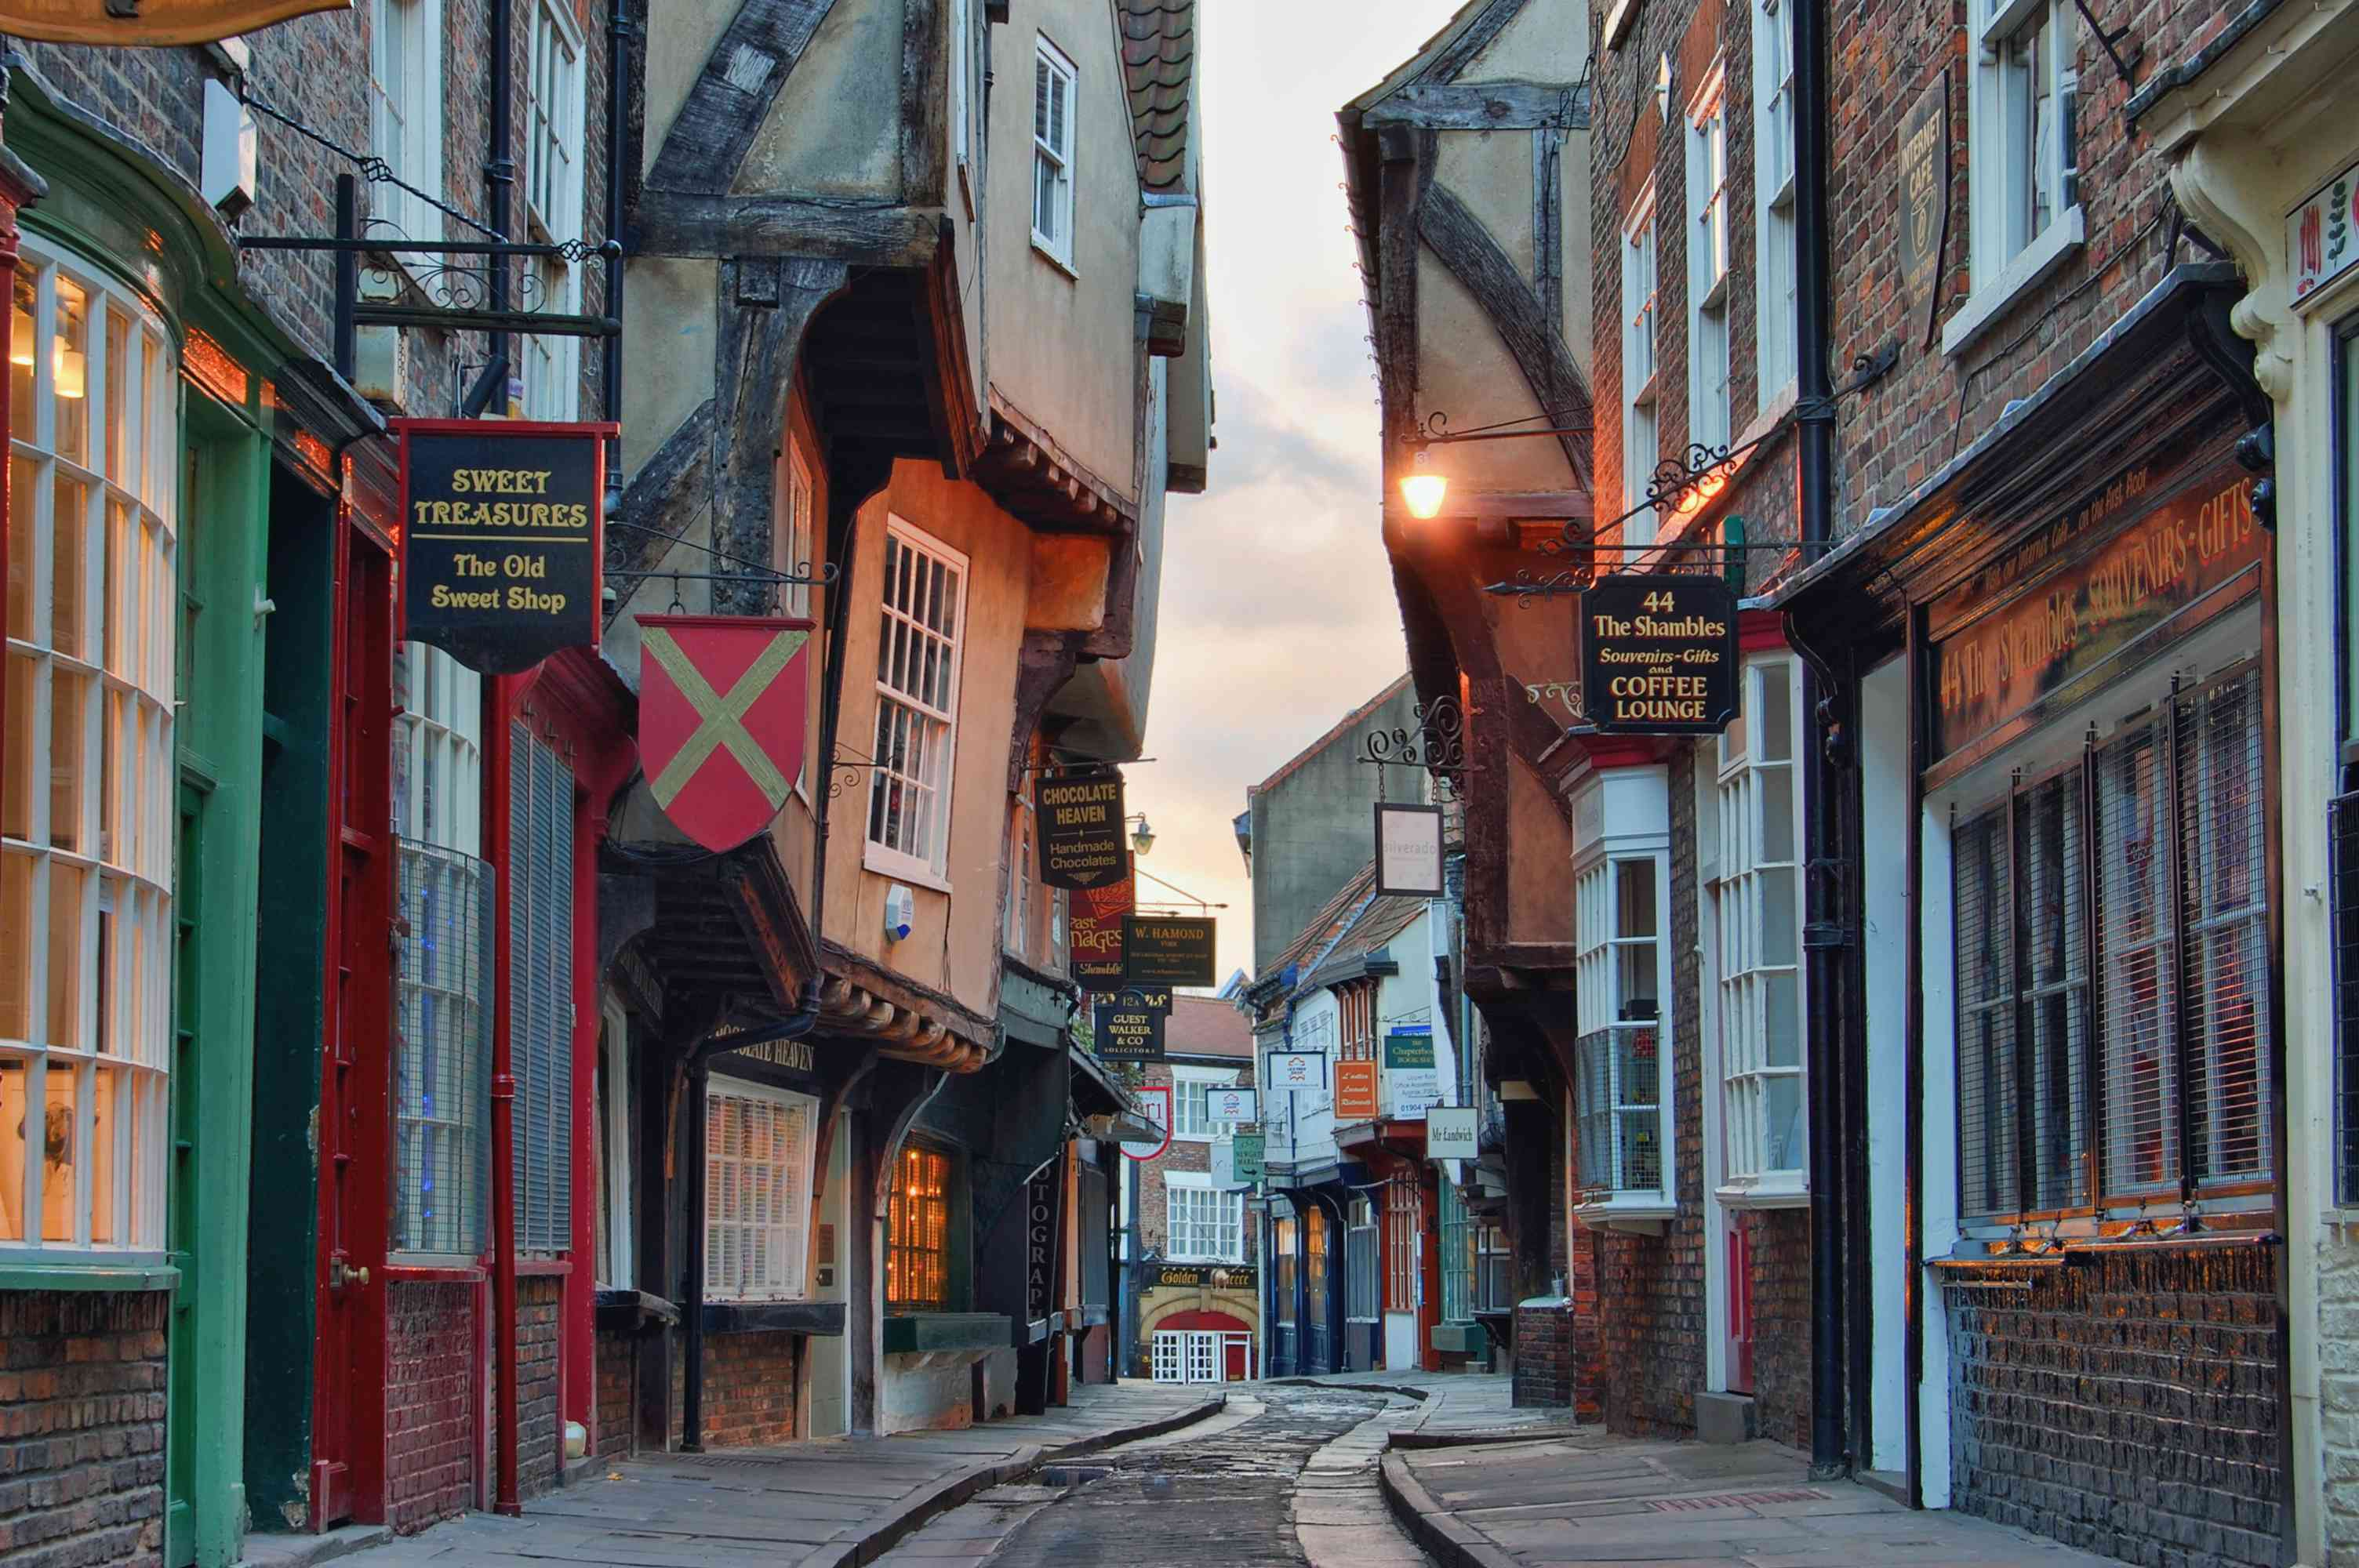 Narrow street with irregularly shaped buildings in in the York shambles at dusk